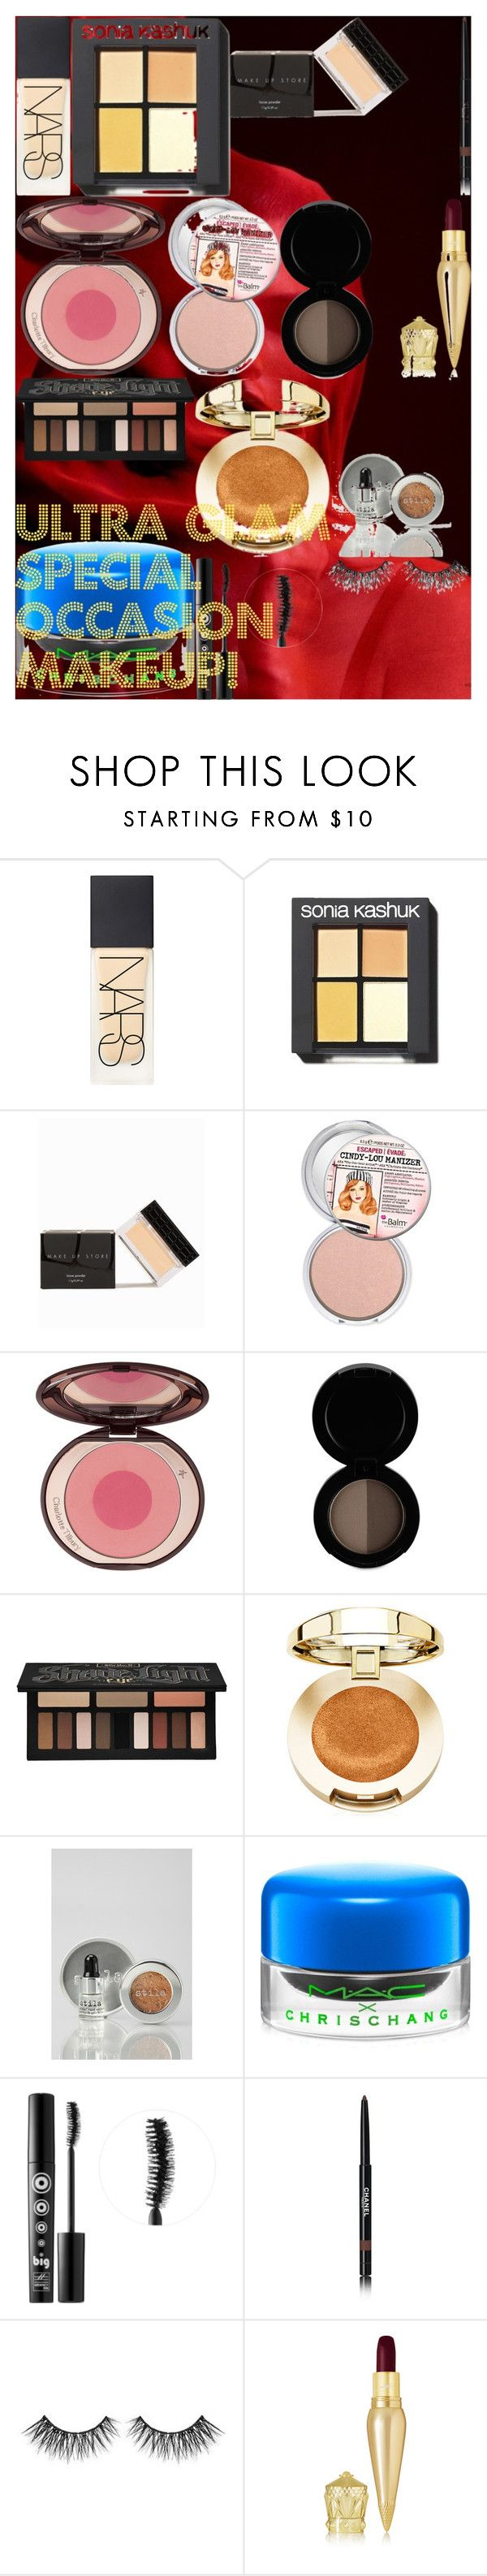 ULTRA GLAM Special Occasion Makeup! by oroartye-1 on Polyvore featuring beauty, Christian Louboutin, Charlotte Tilbury, Kat Von D, NARS Cosmetics, Stila, MAKE UP STORE, Ardency Inn, Huda Beauty and Chanel